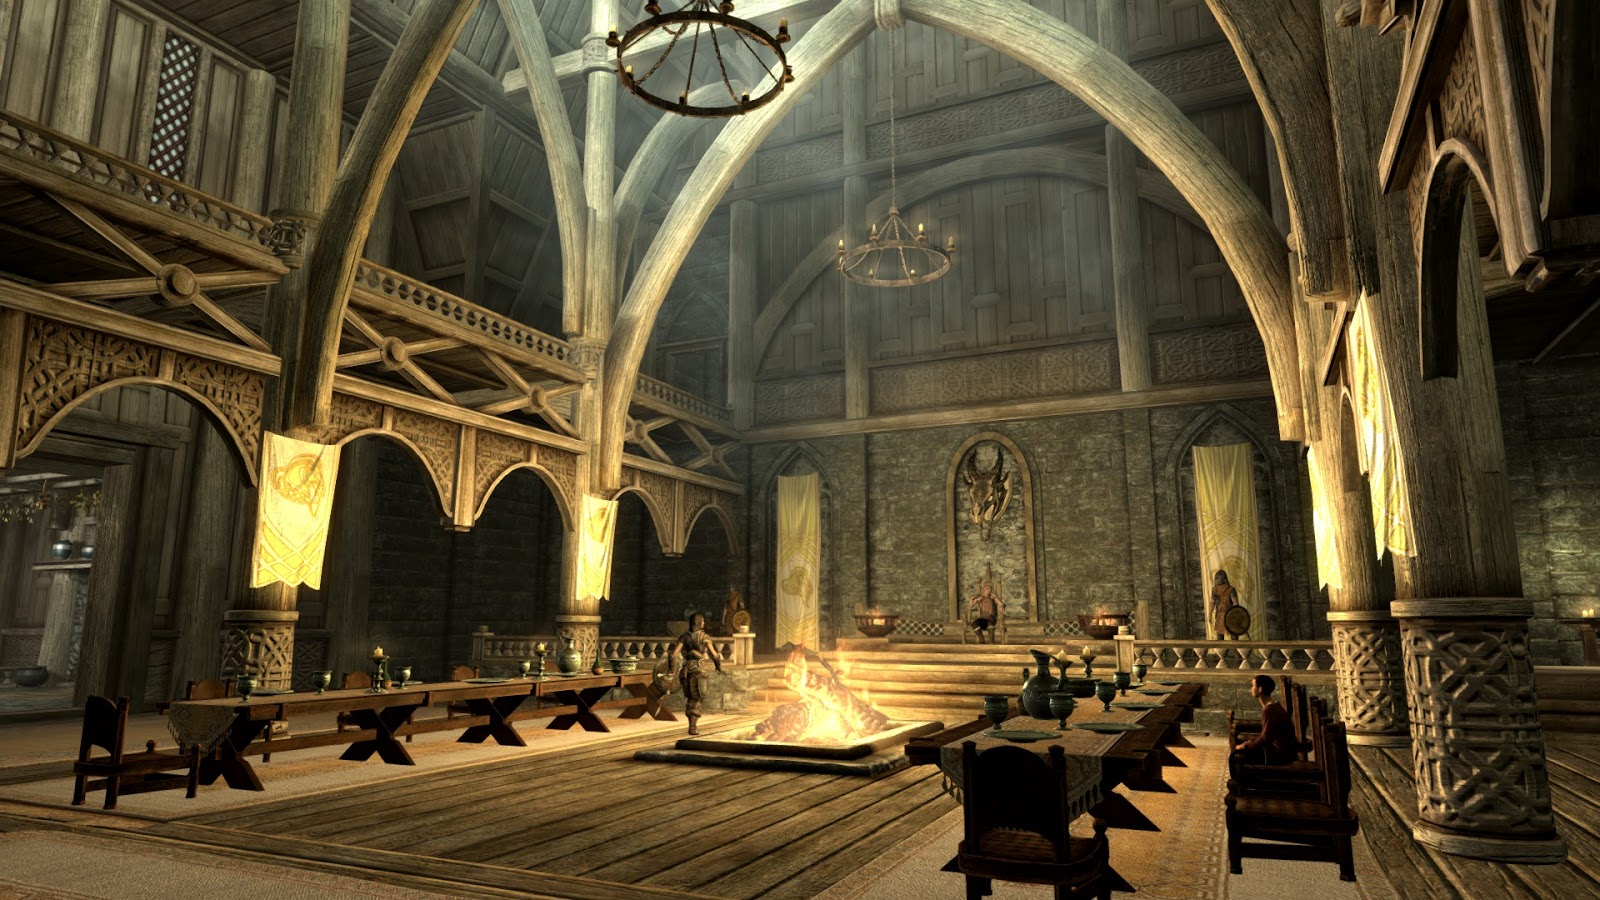 The art of architecture skyrim dragonsreach